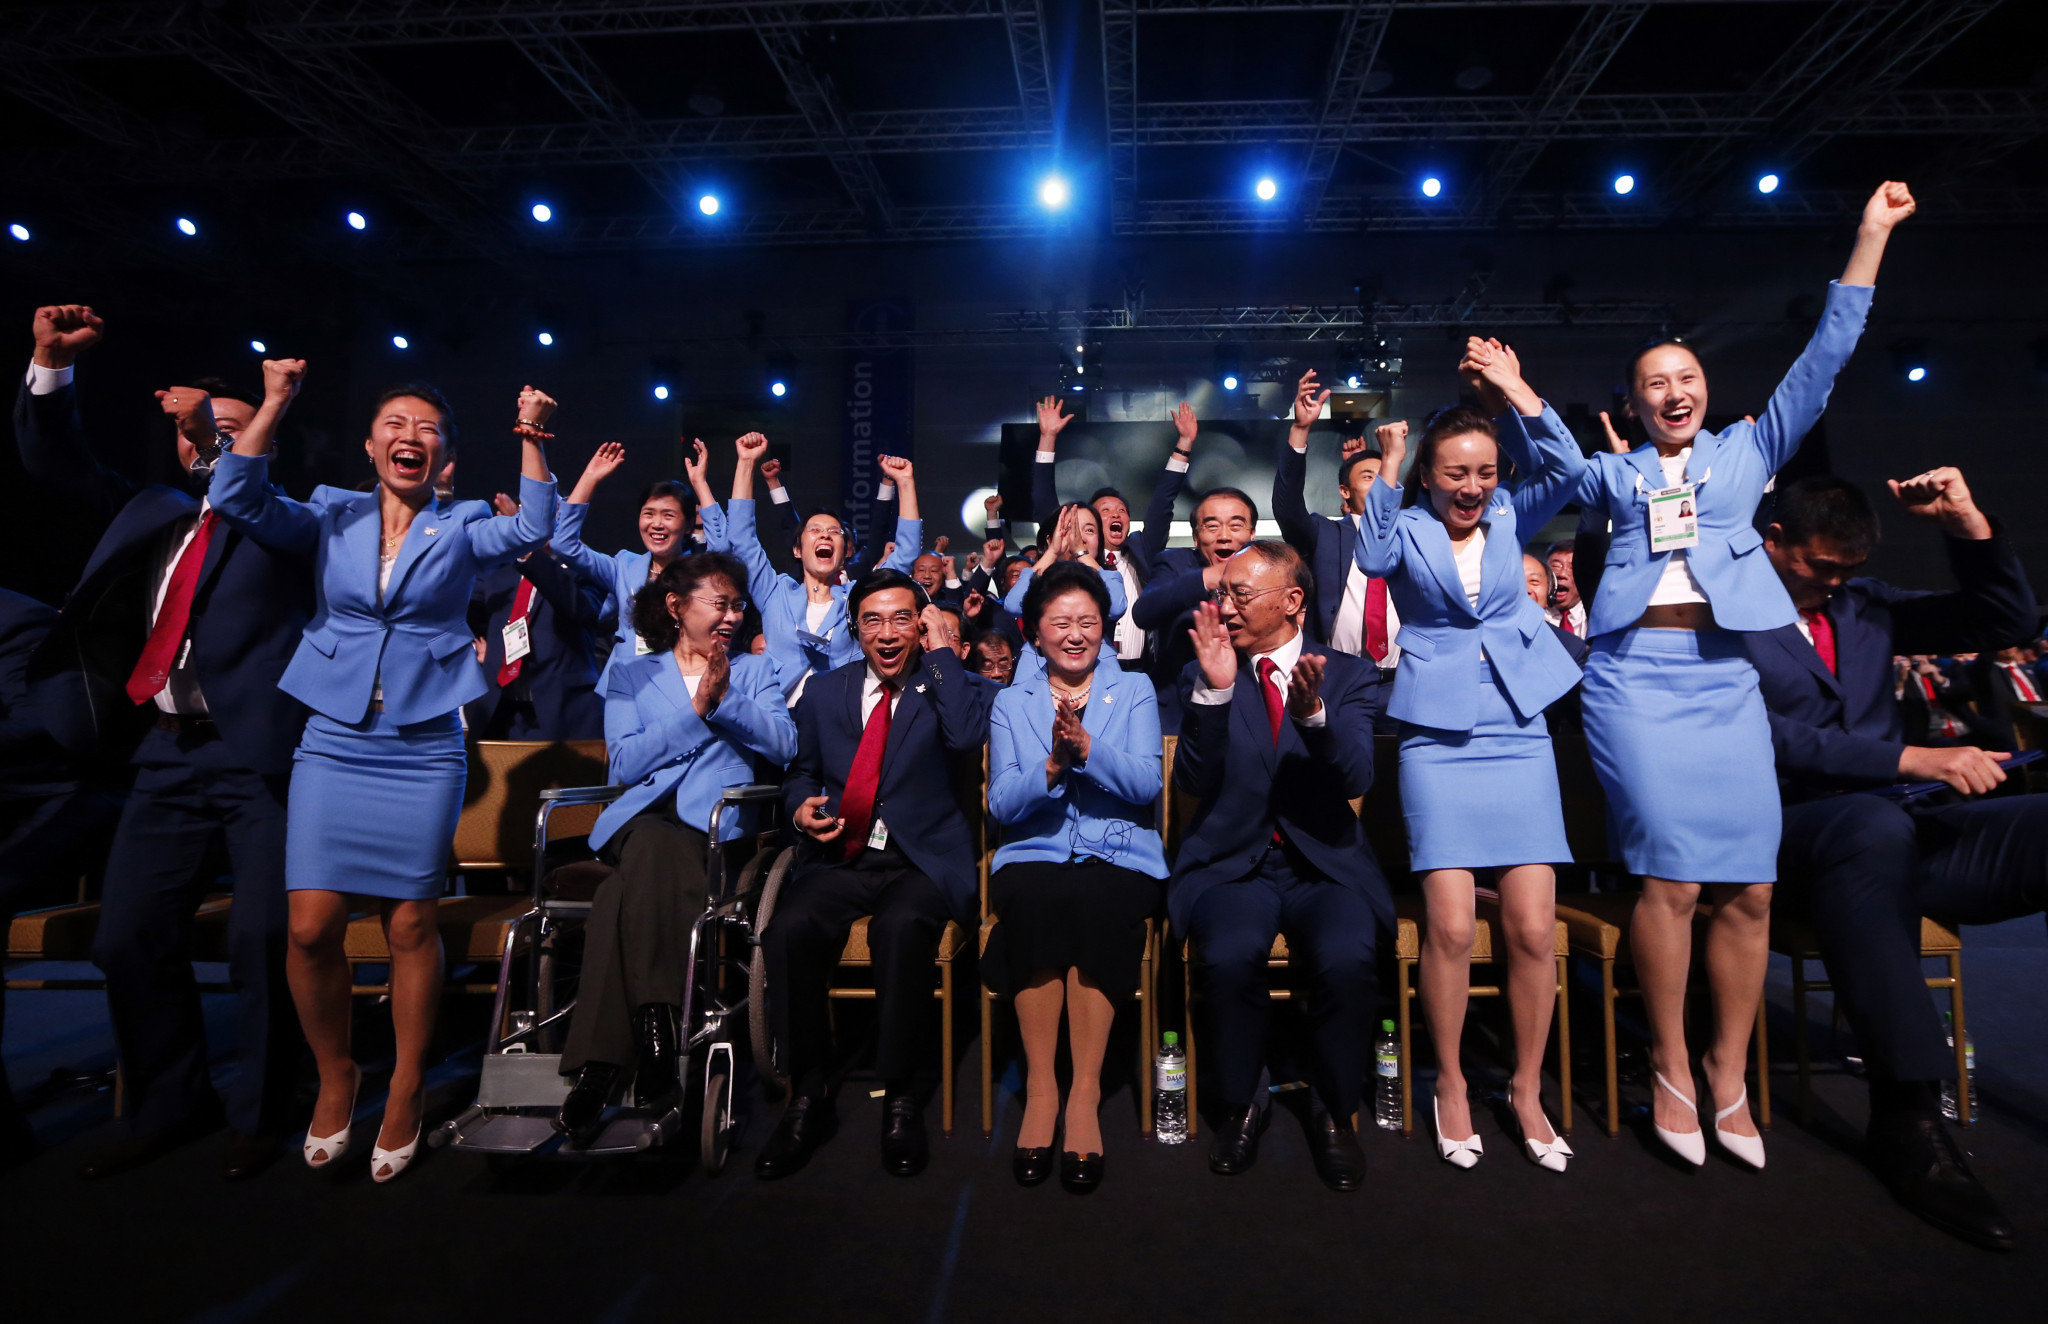 Vice-president of the Beijing 2022 Olympic Winter Games Bid Committee Zhang Haidi, Mayor of Beijing Wang Anshun, China's Vice Premier Liu Yandong, President of the Chinese Olympic Committee Liu Peng and members of the of the Beijing 2022 Olympic Winter Games Bid Committee celebrate after Beijing, was announced as the host city for the 2022 Winter Olympics... but this was a bidding process that only came to life late in the day © Getty Images